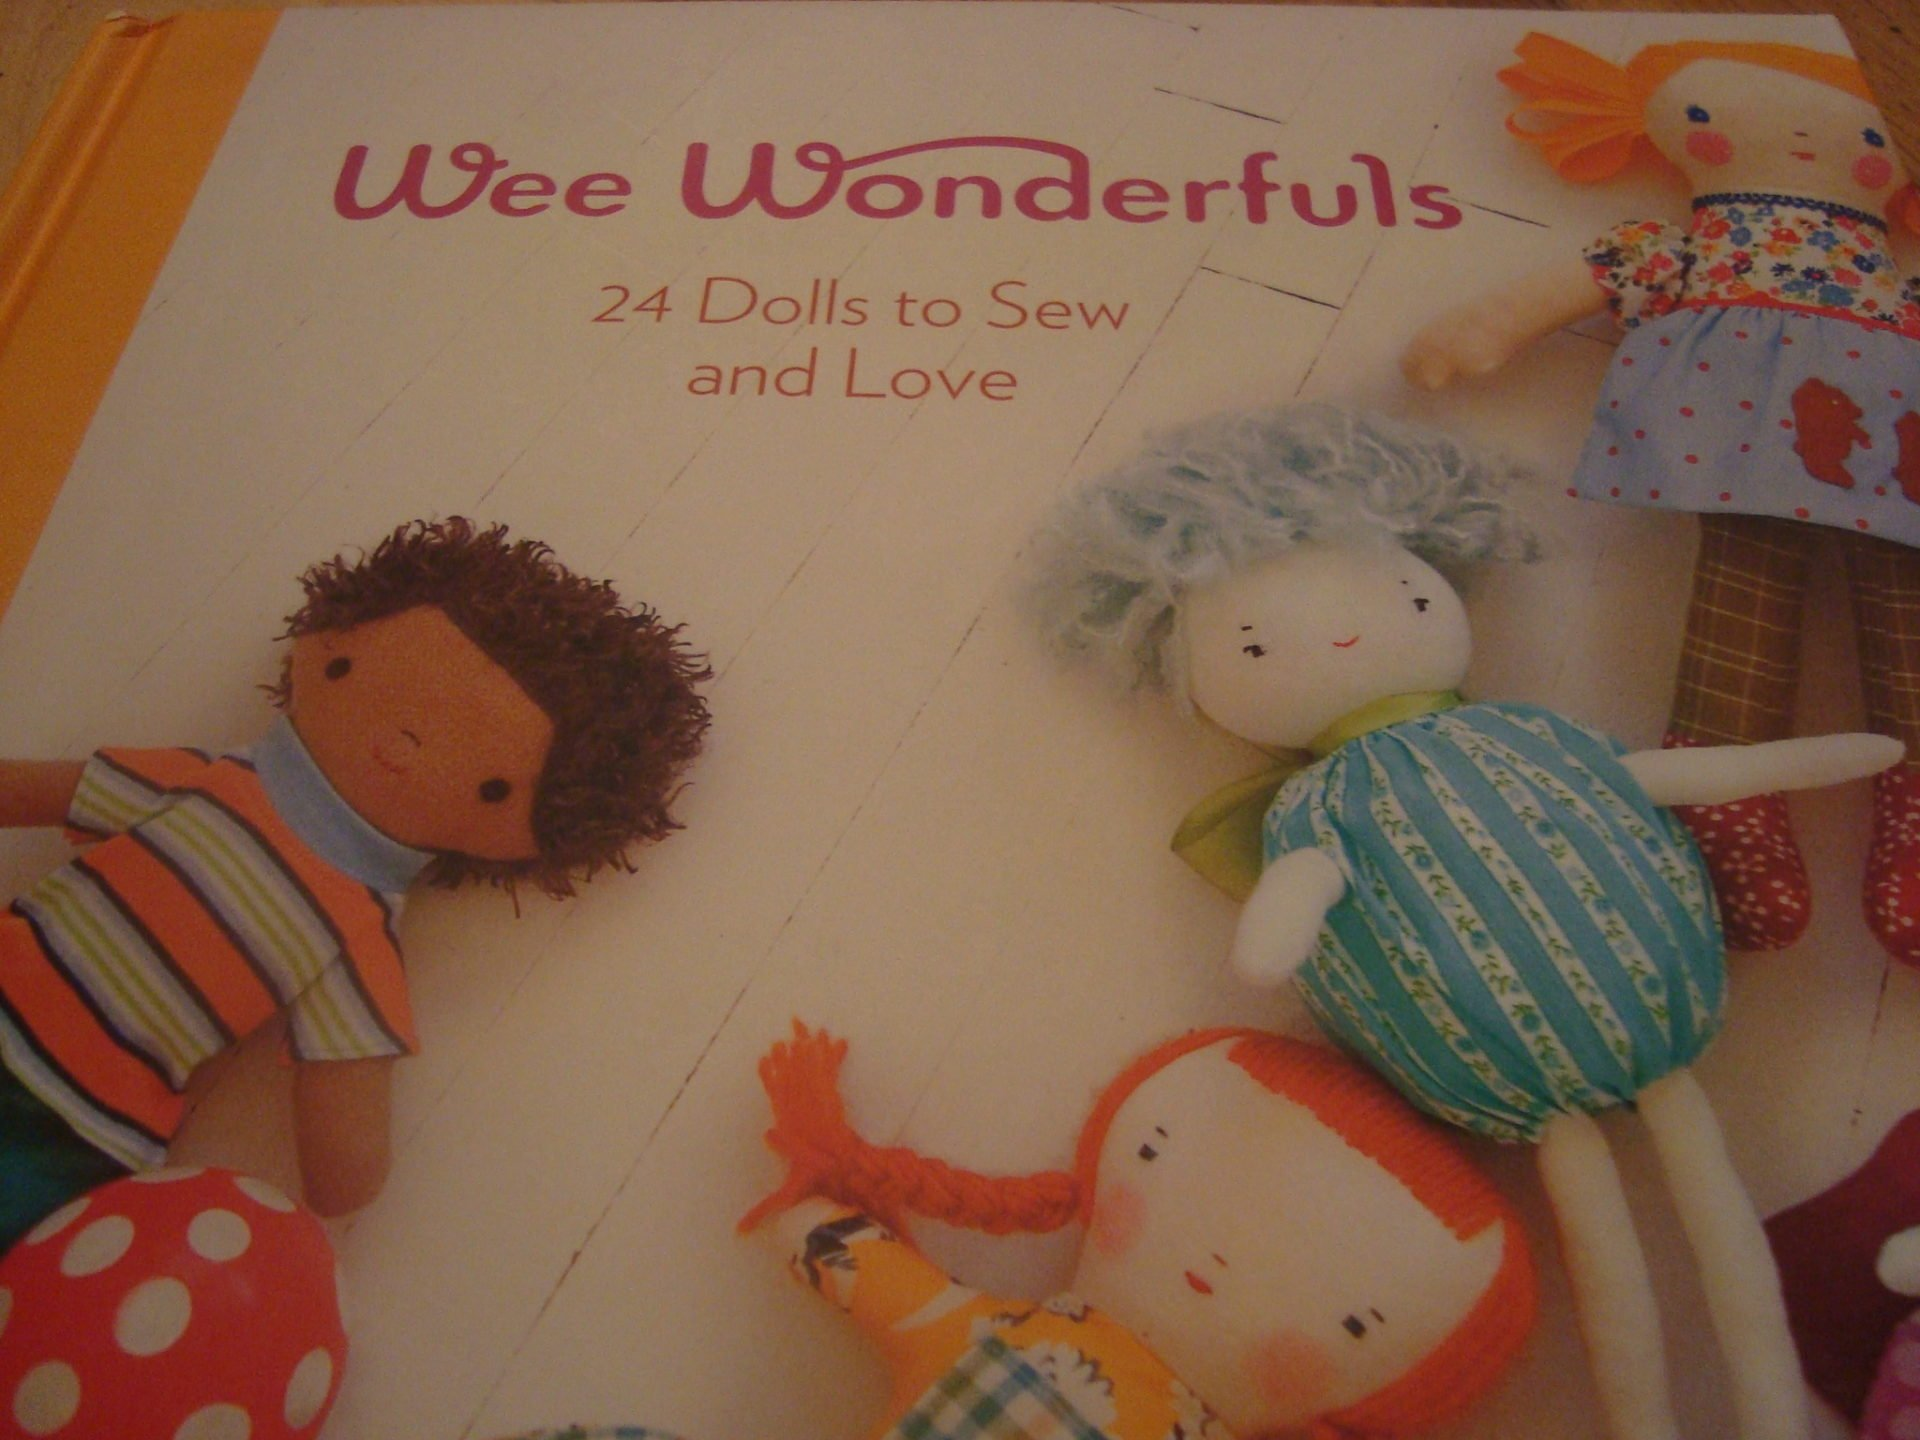 wee wonderfuls book